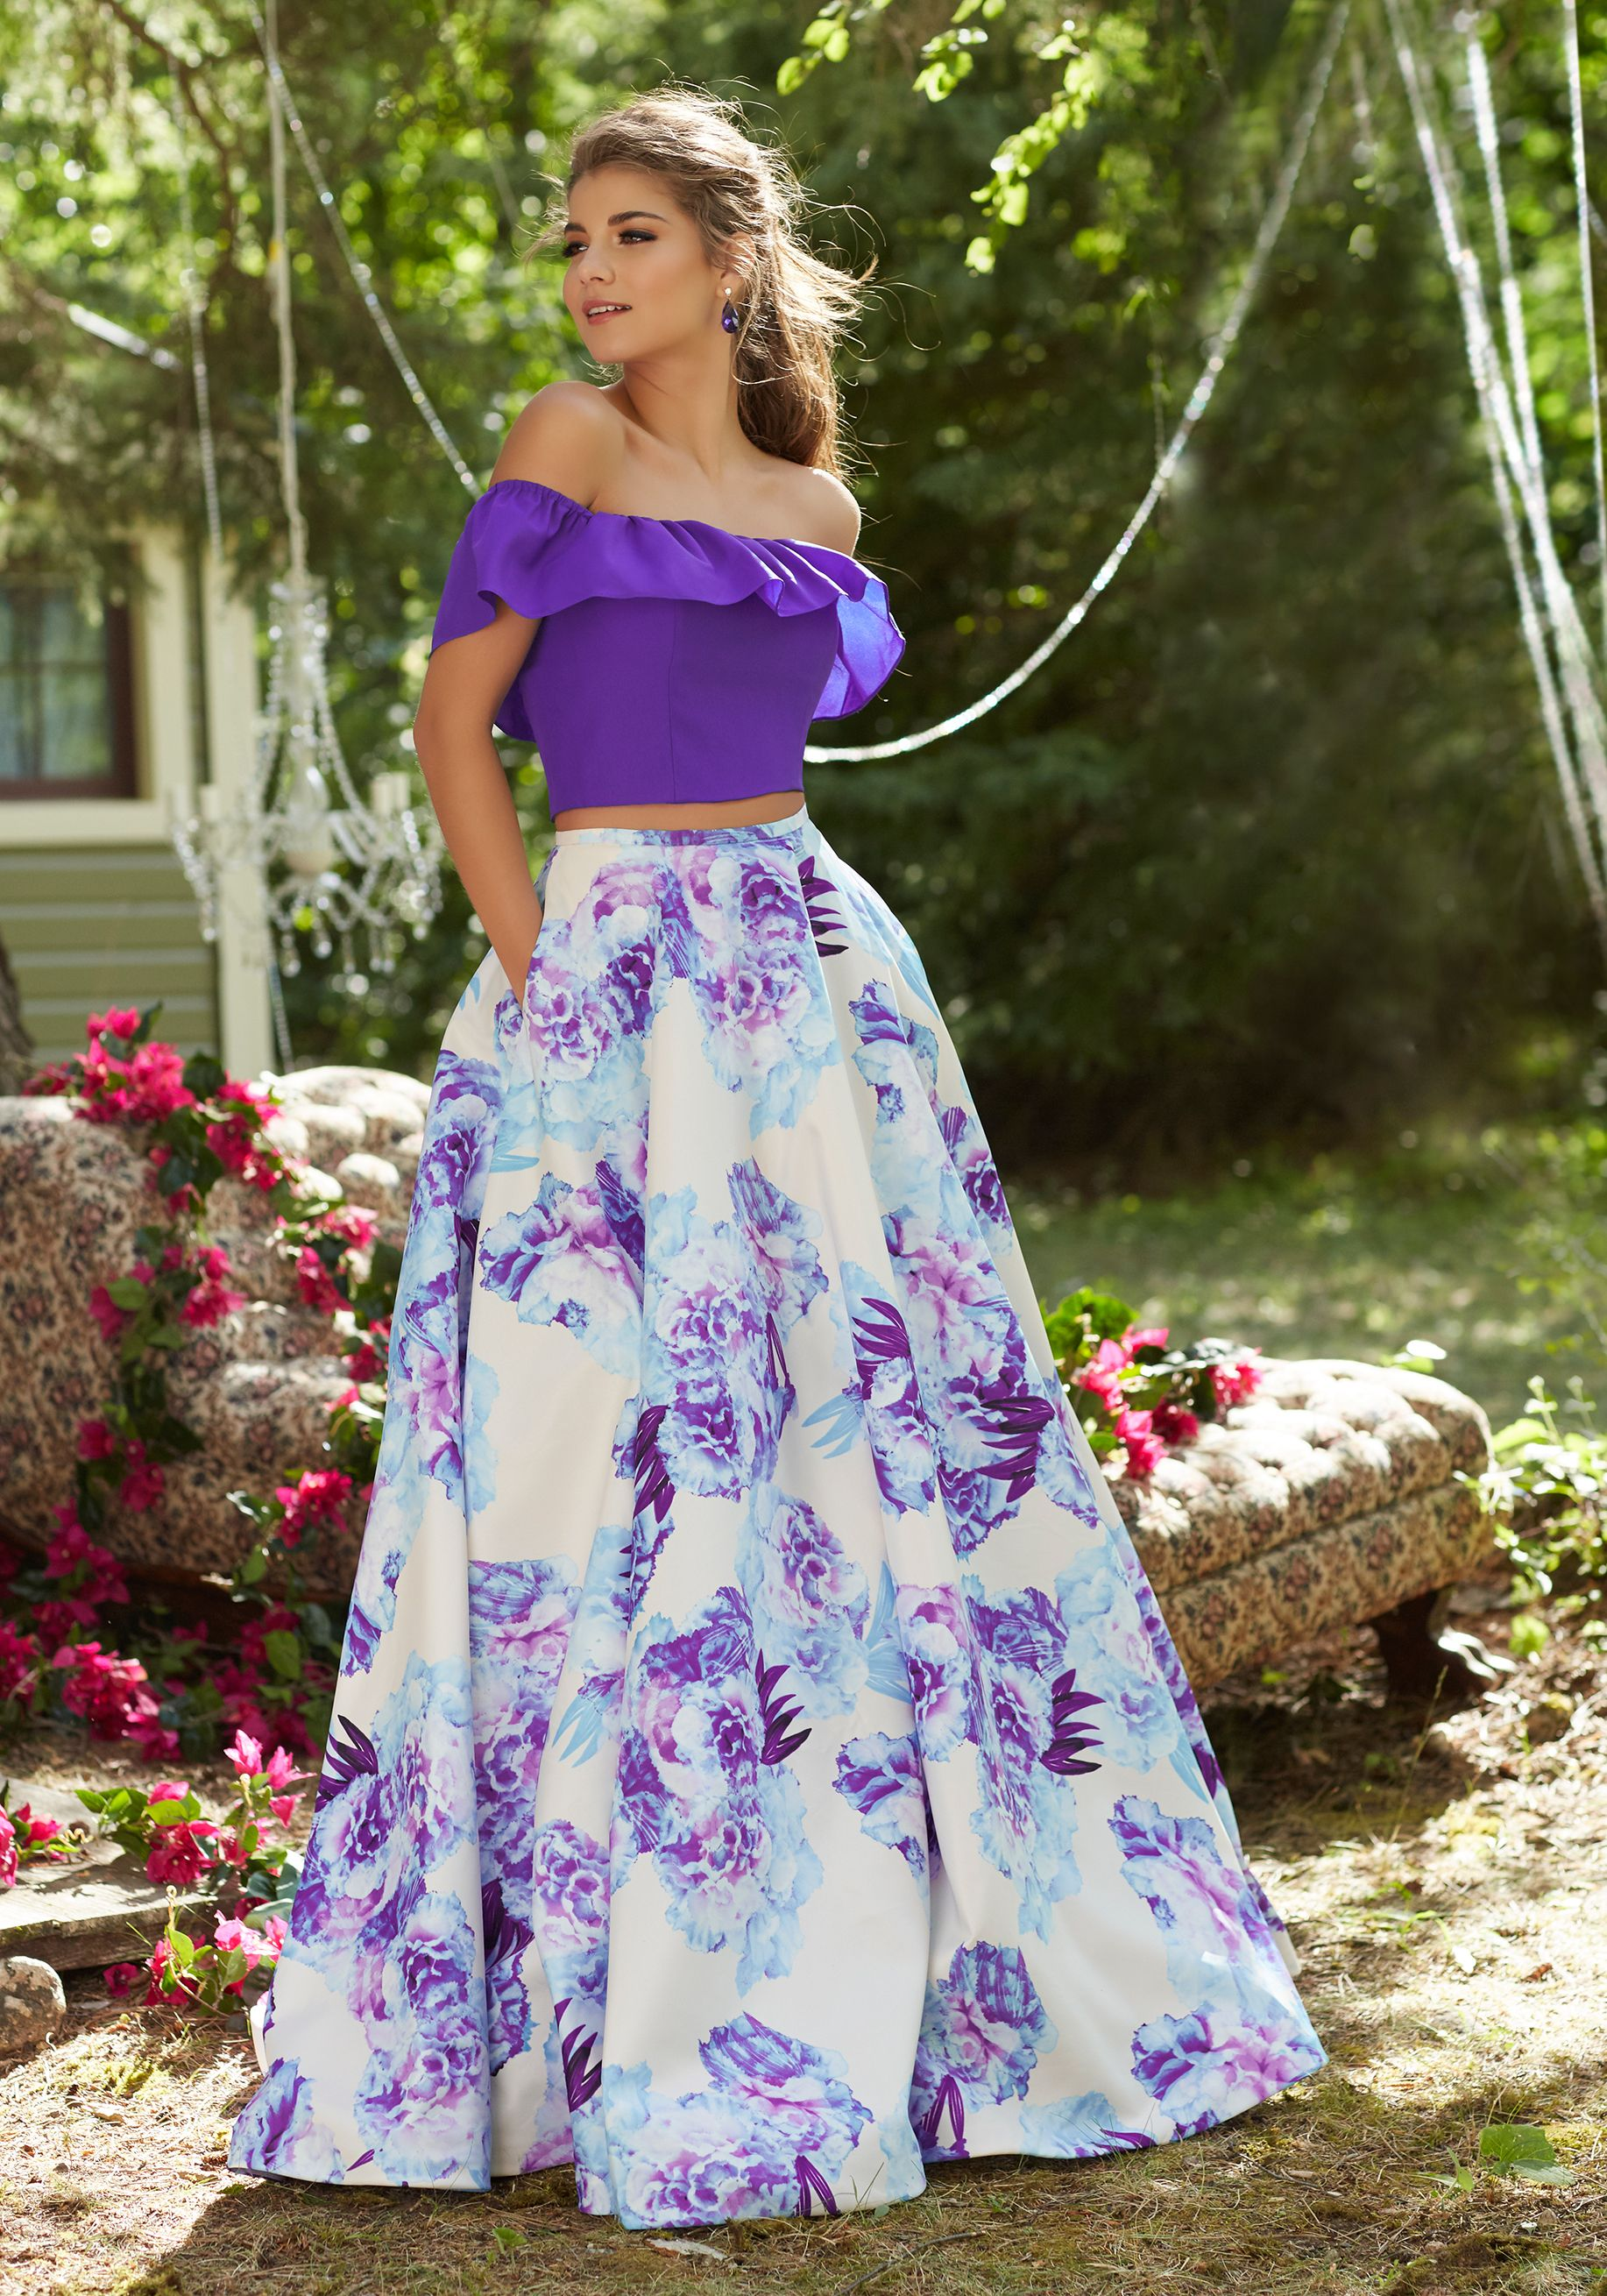 Twopiece prom dress with offtheshoulder neckline and floral